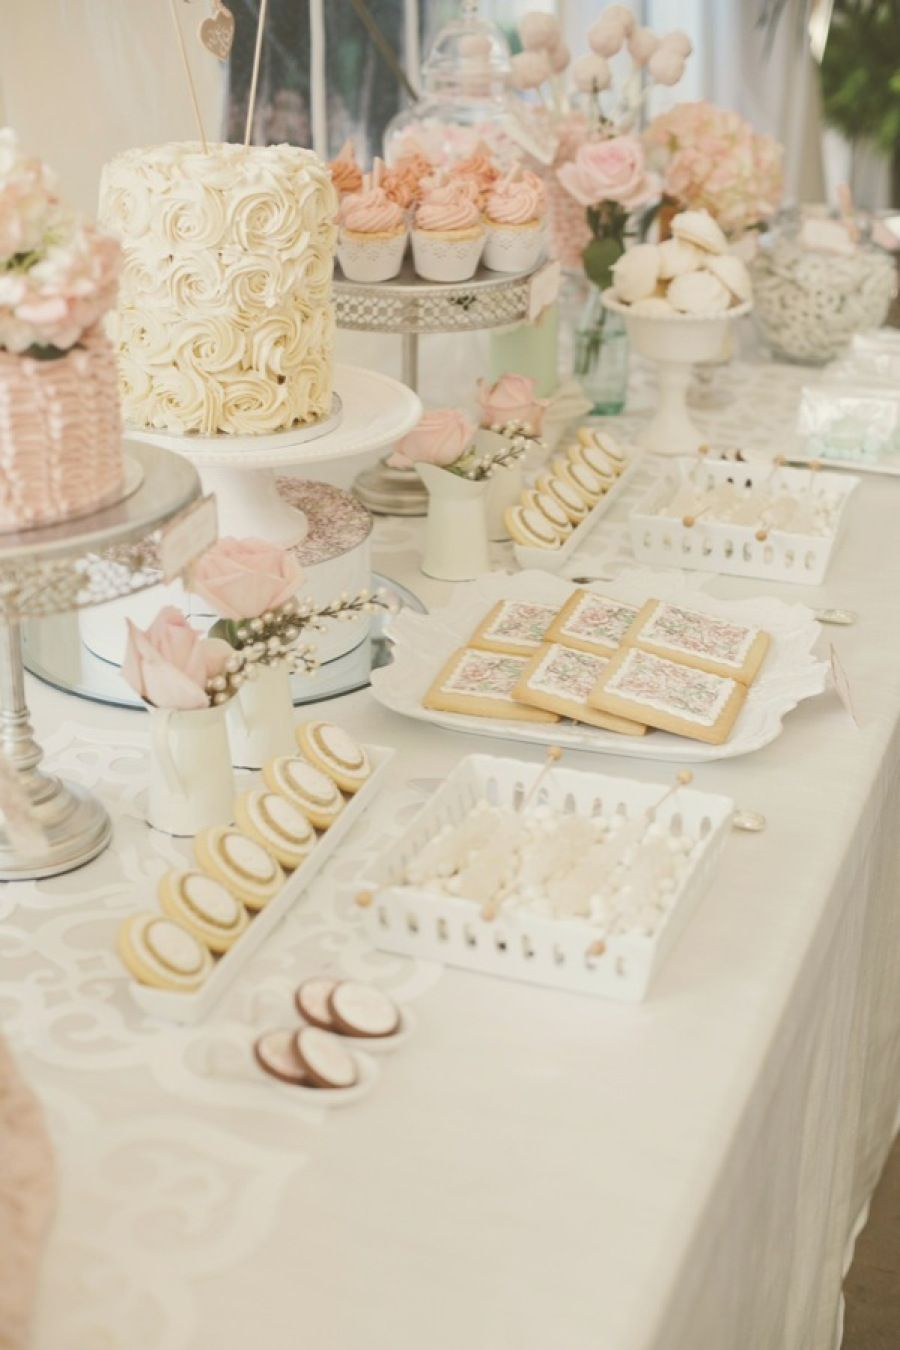 Dessert Candy Bar By Style Me Pretty Gallery Inspiration Www Tablescapesbydesign